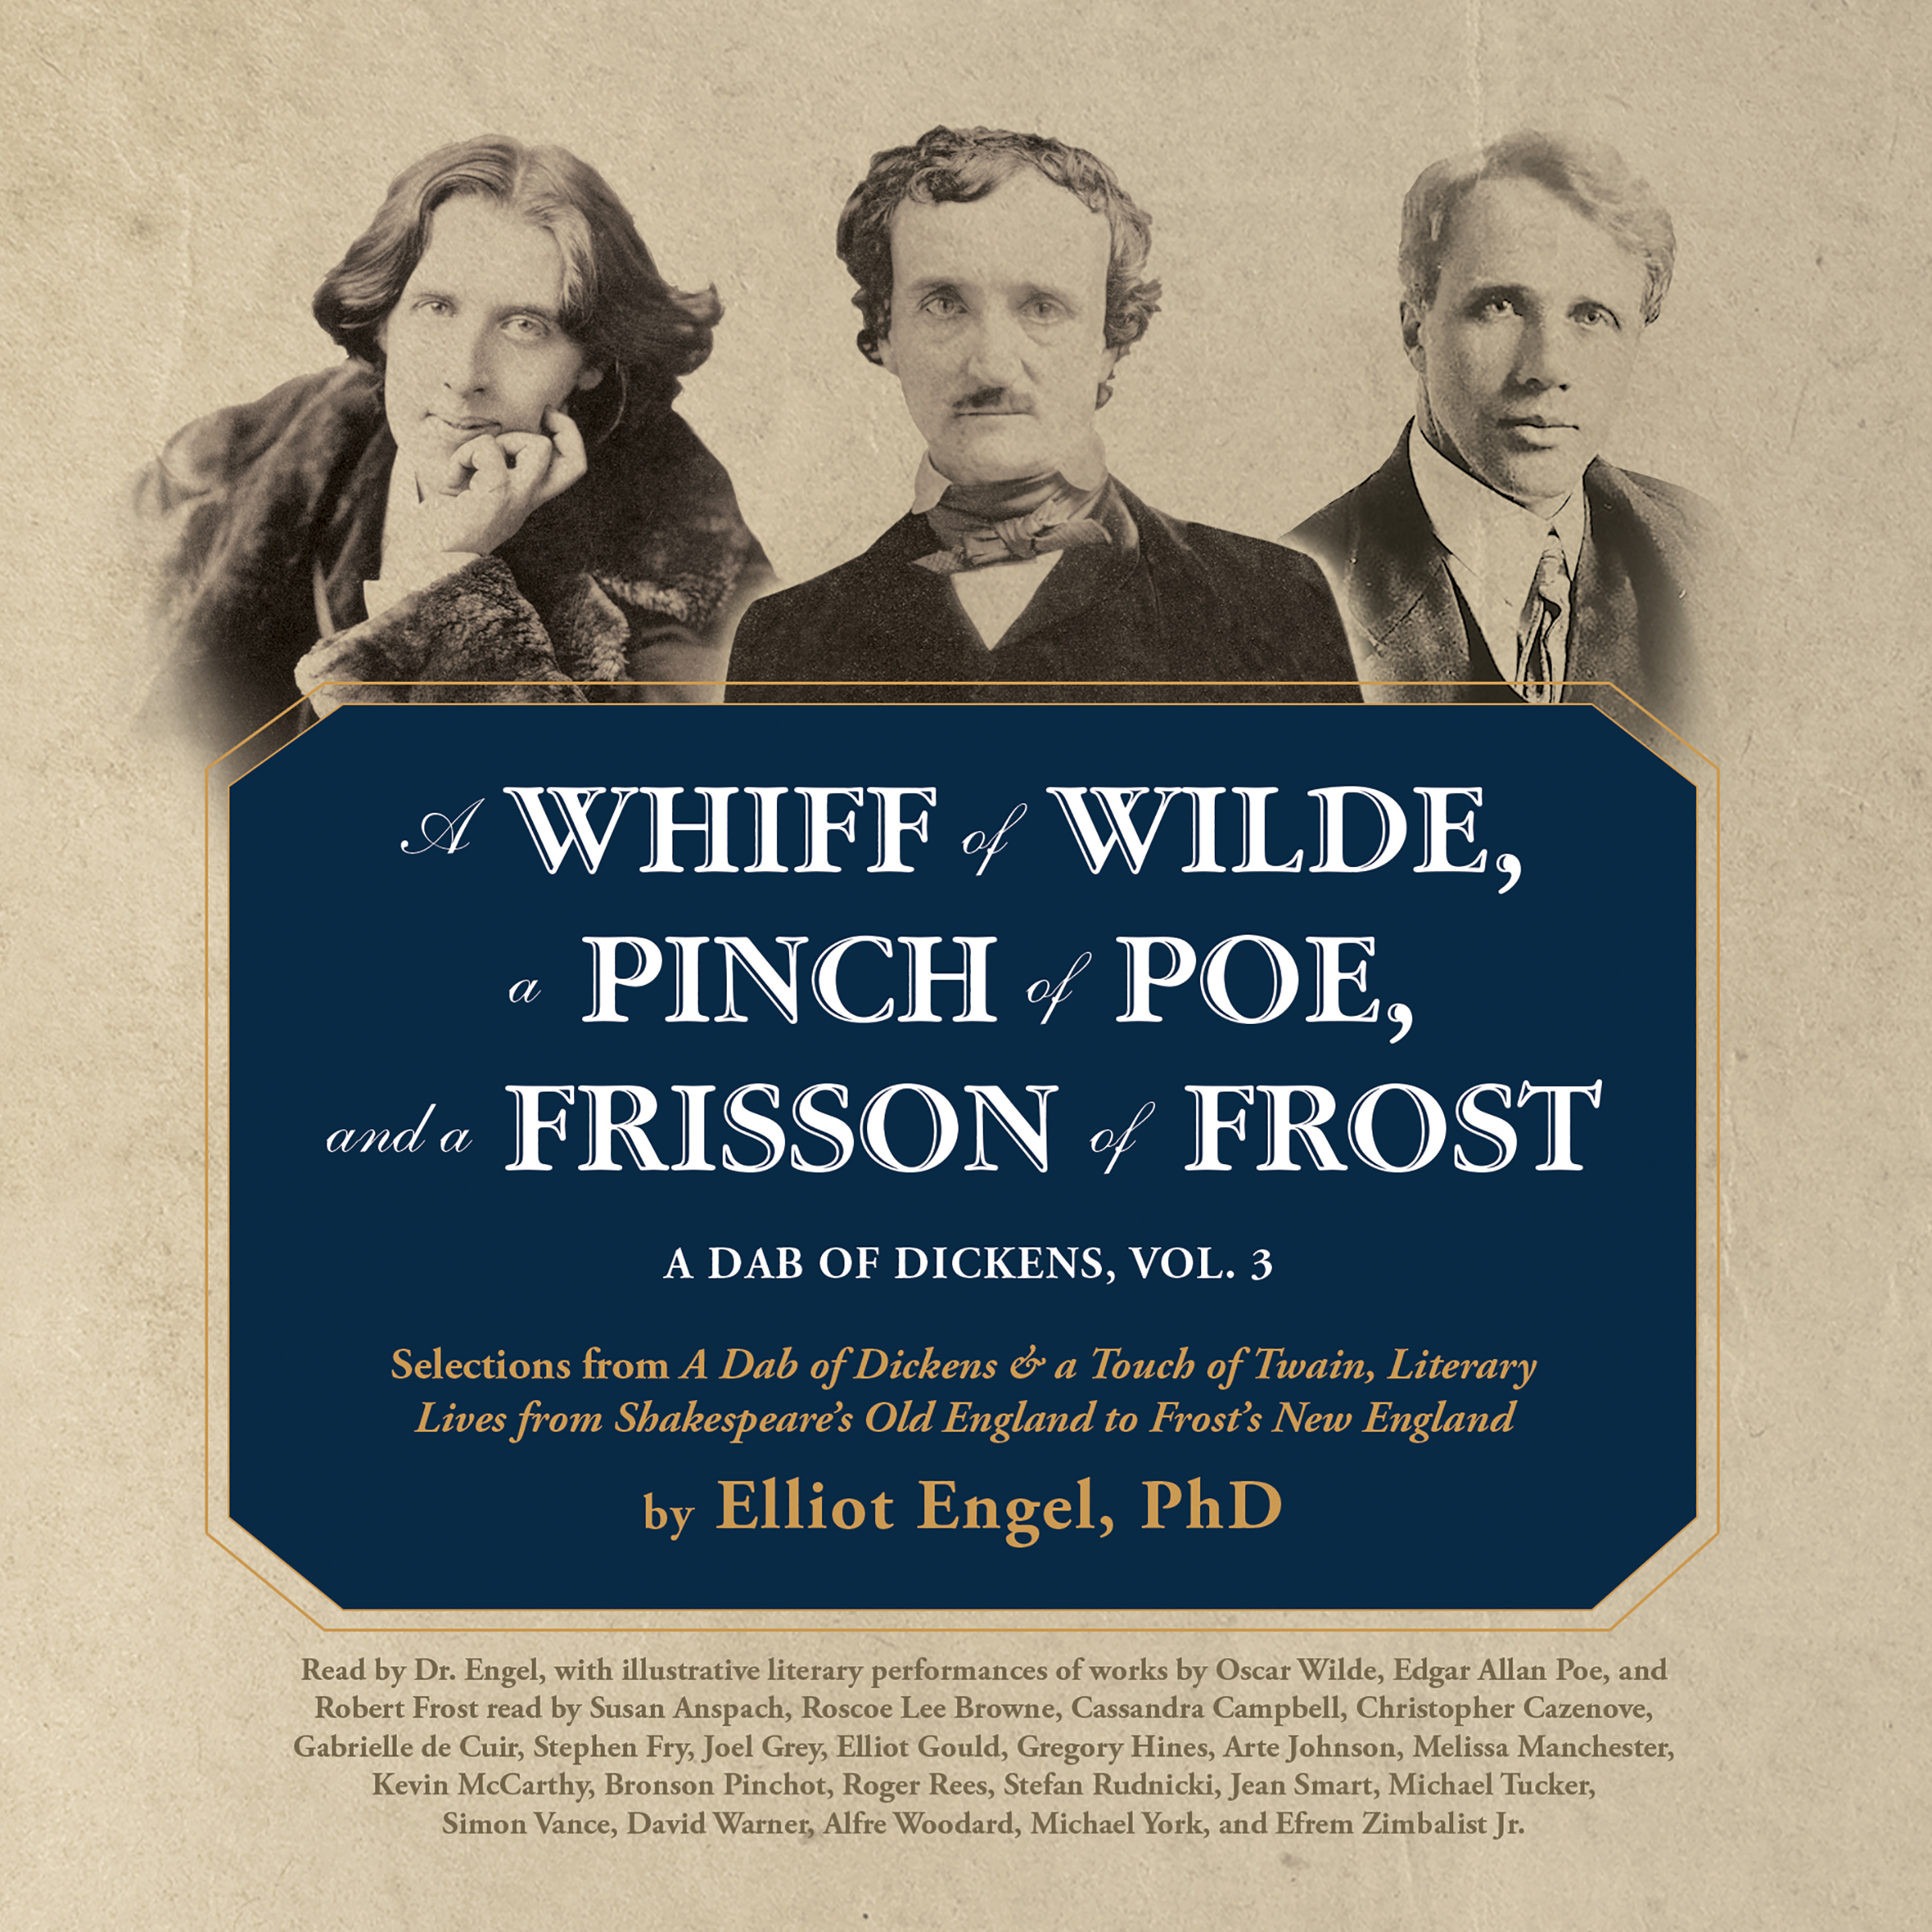 Printable A Whiff of Wilde, a Pinch of Poe, and a Frisson of Frost: A Dab of Dickens, Vol. 3; Selections from A Dab of Dickens & a Touch of Twain, Literary Lives from Shakespeare's Old England to Frost's New England Audiobook Cover Art